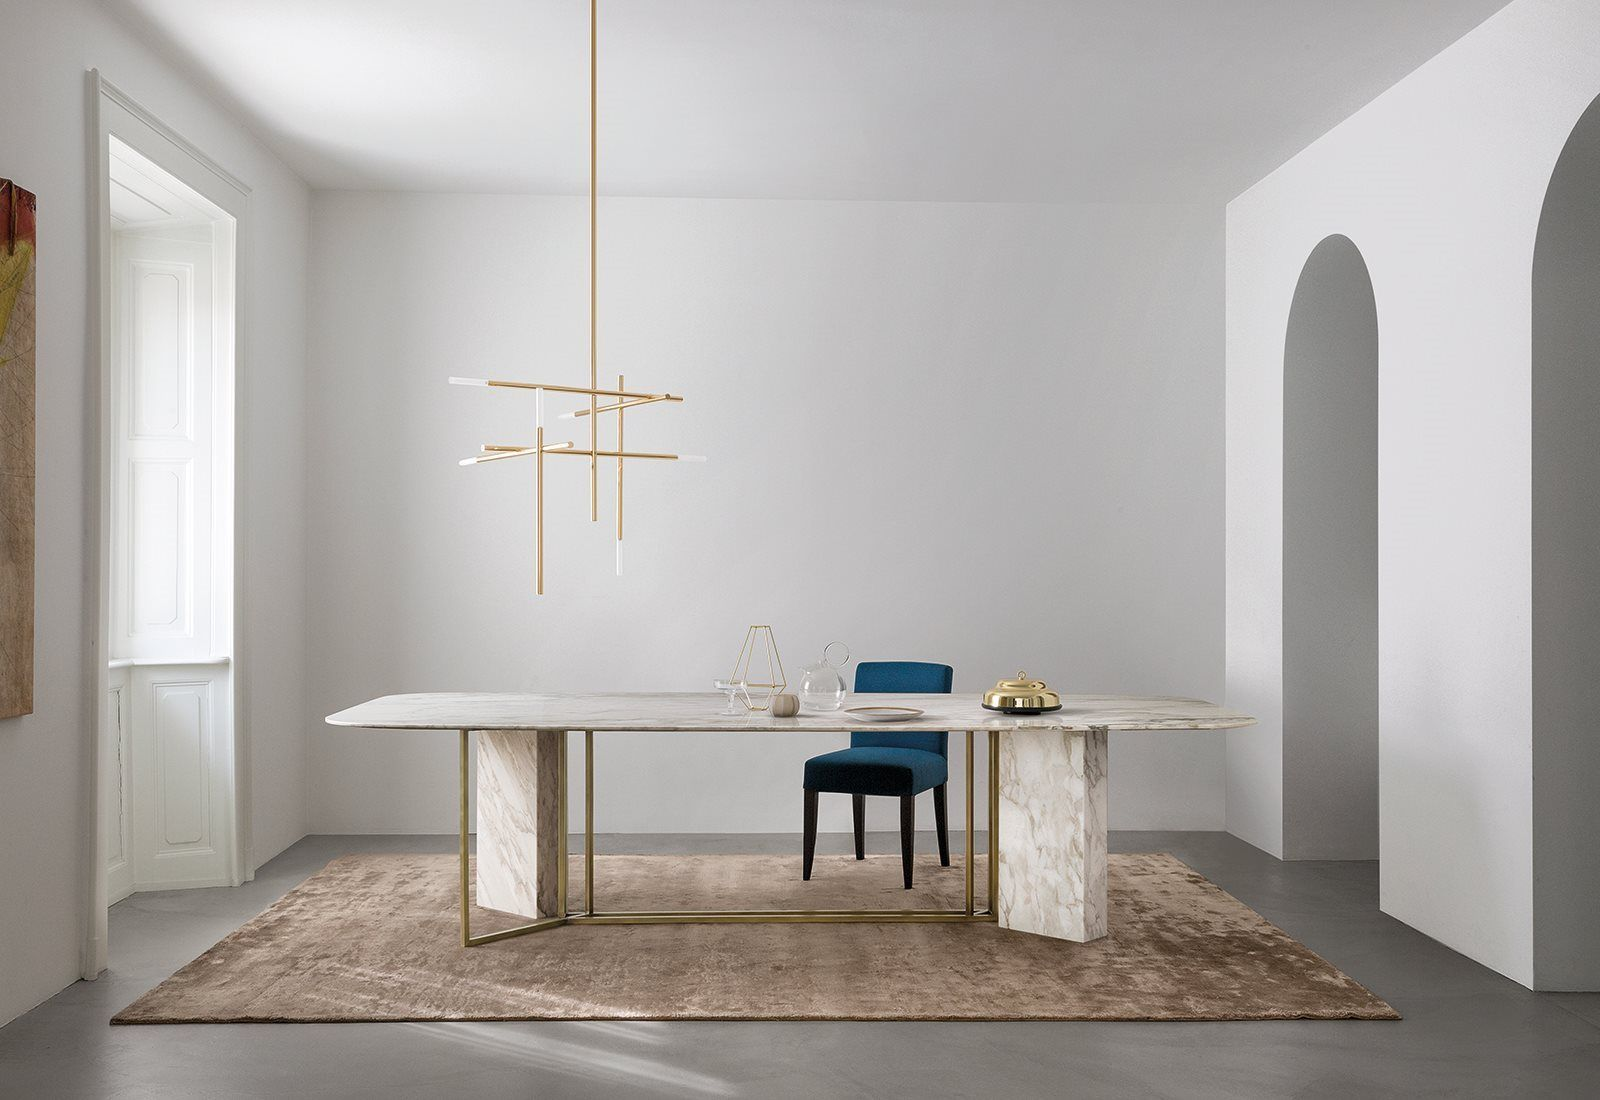 Plinto table meridiani design and art direction by for Catalogo meridiani